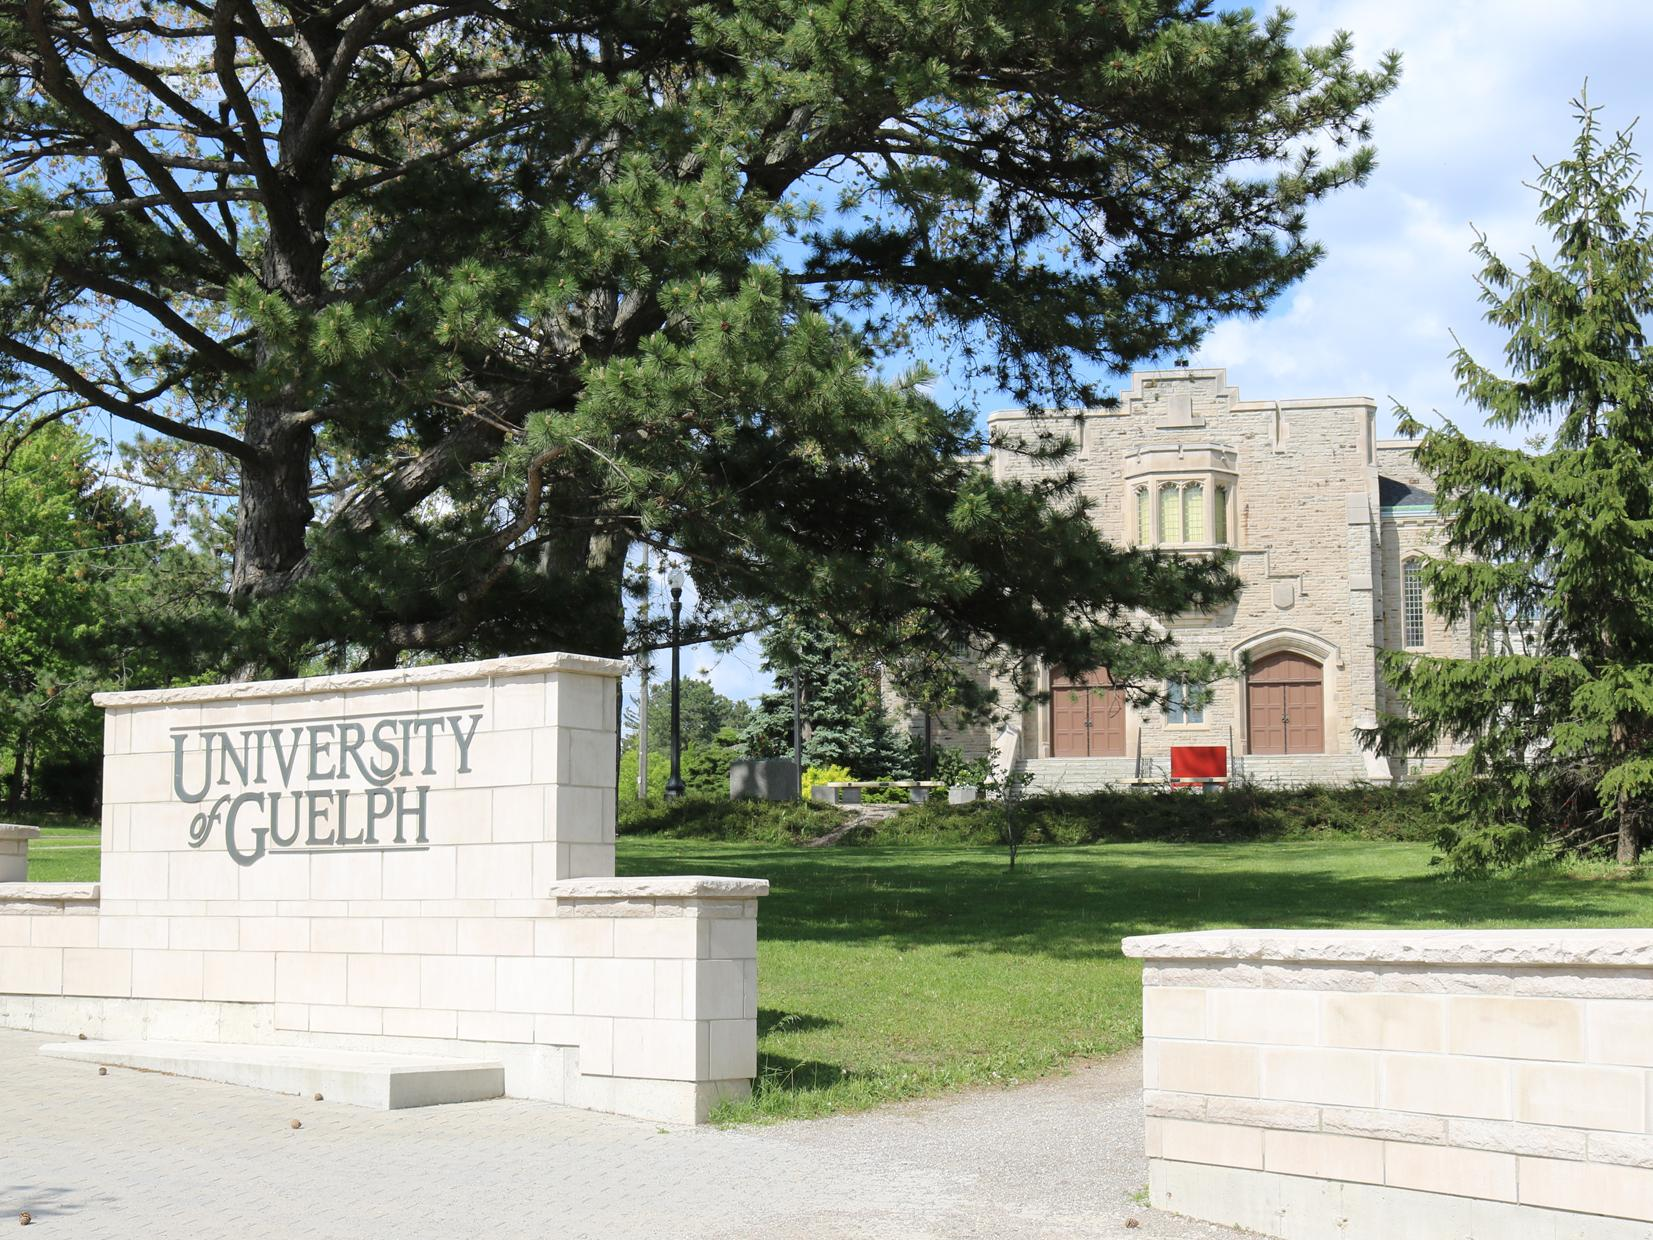 University of Guelph, campus entrance